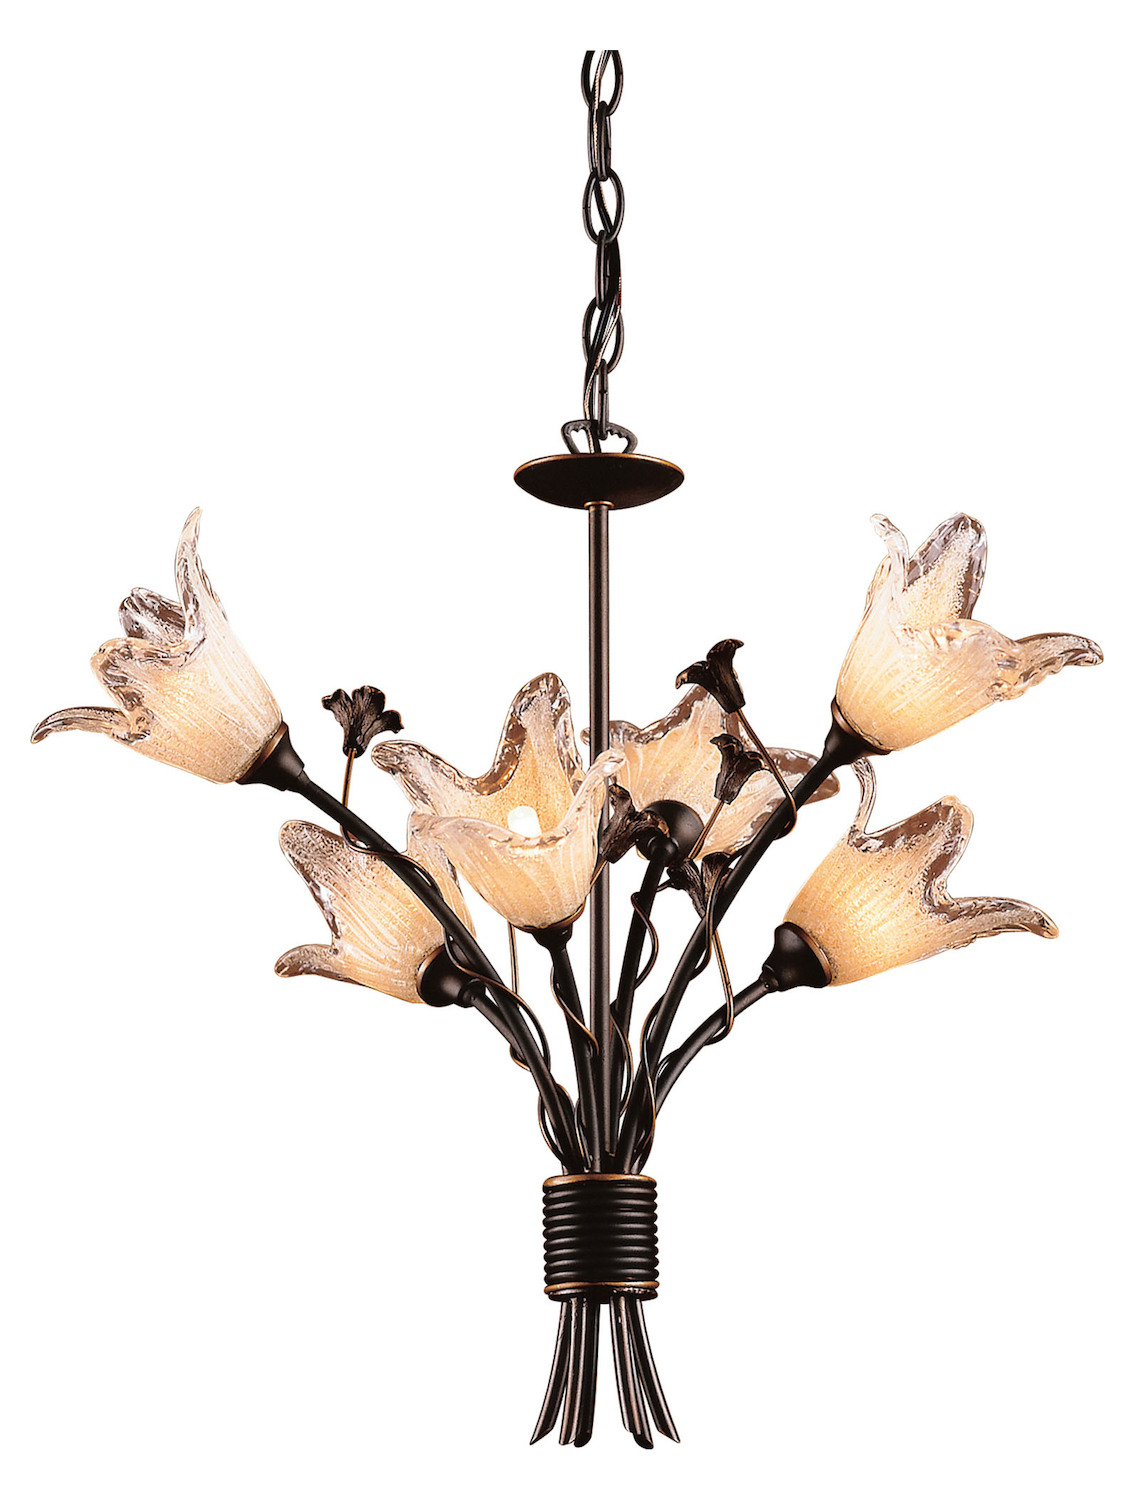 ELK Lighting Twelve Light Aged Bronze Hand Blow Tulip Glass Up Chandelier